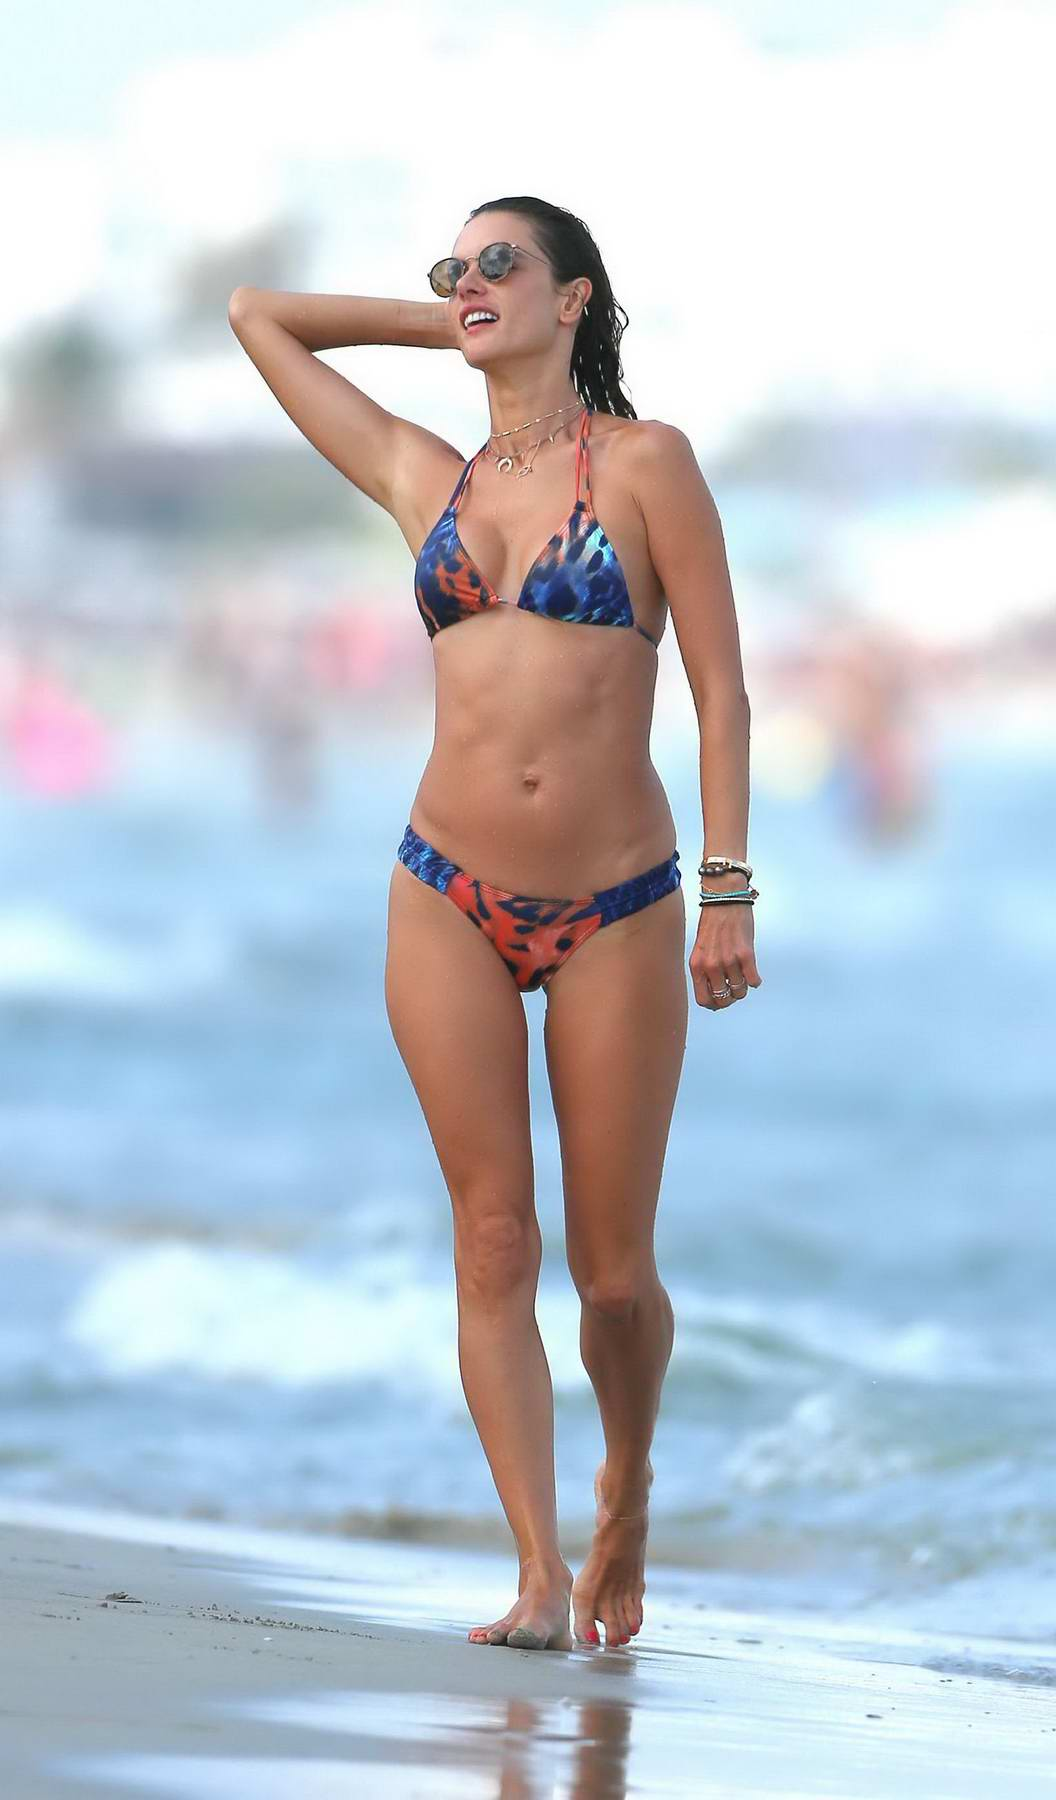 Alessandra Ambrosio in a Colourful Print Bikini on the Beach with her Husband in Ibiza, Spain